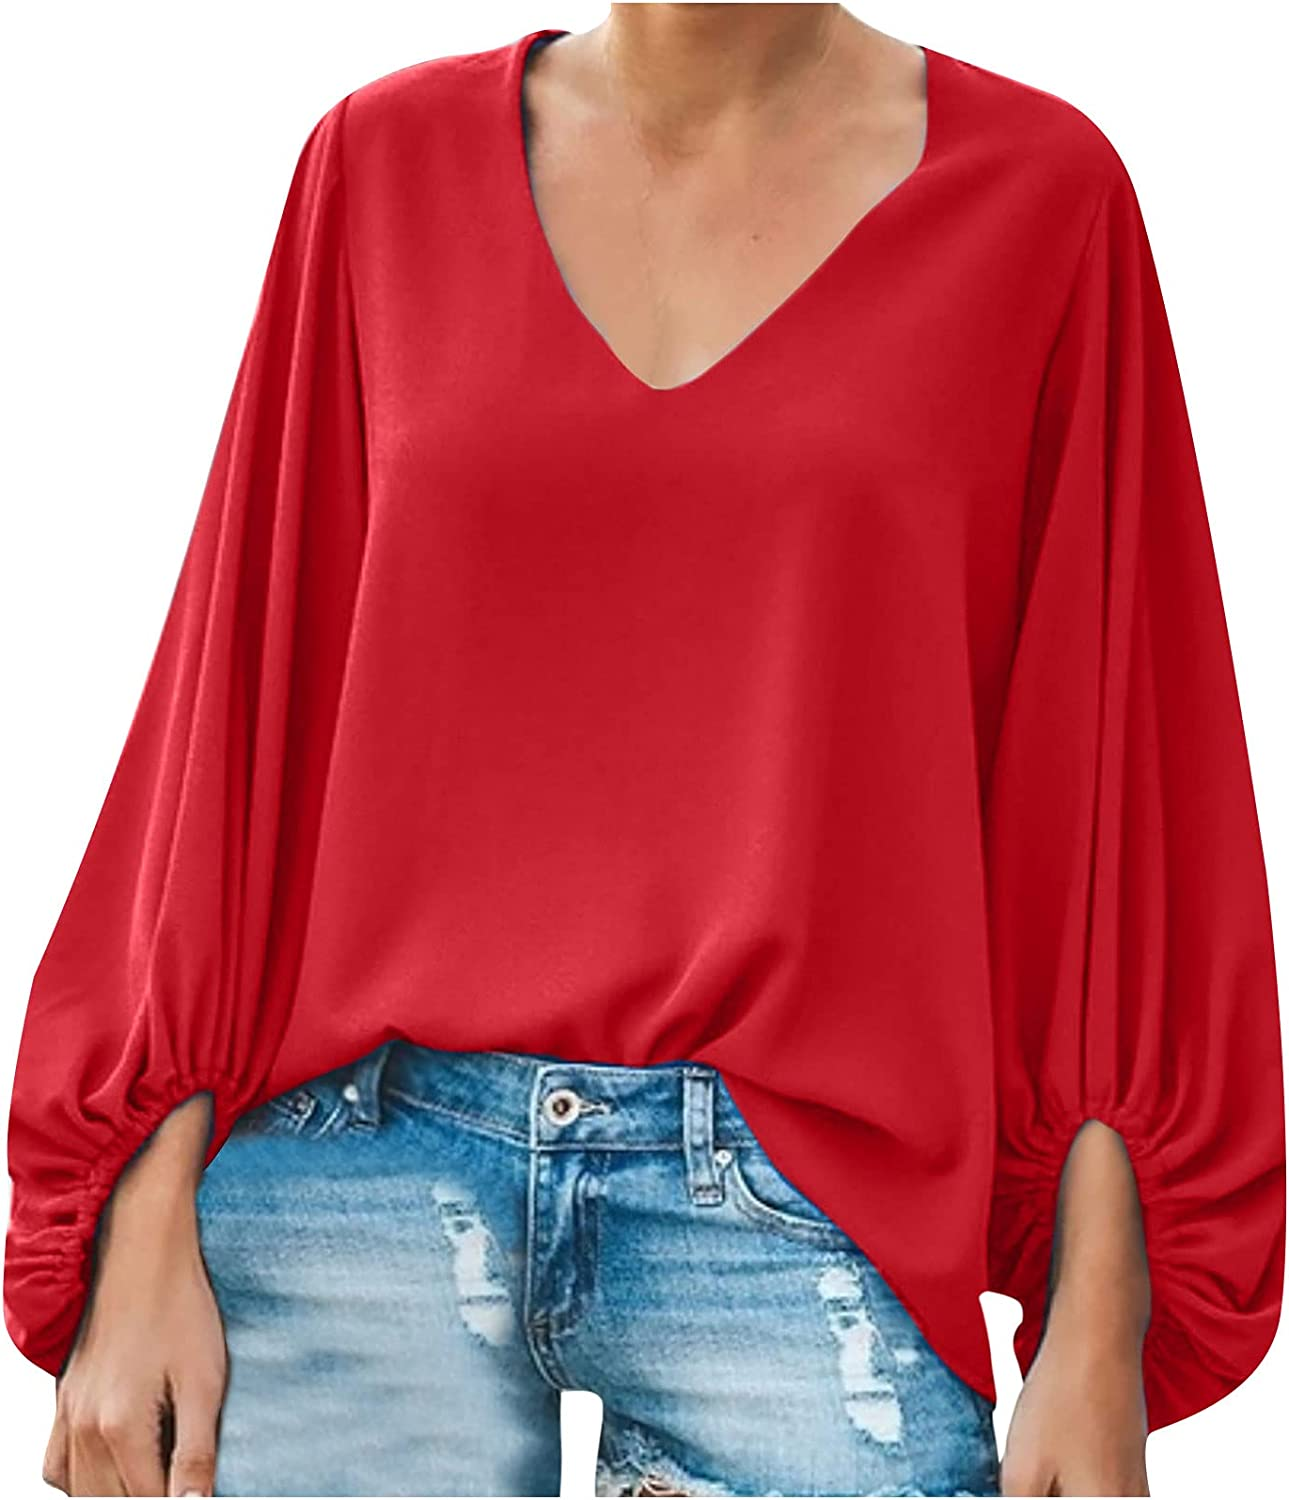 Fashion Womens T-Shirt Lantern Long Sleeve V-Neck Solid Color Loose Casual Blouse Tops S-2XL